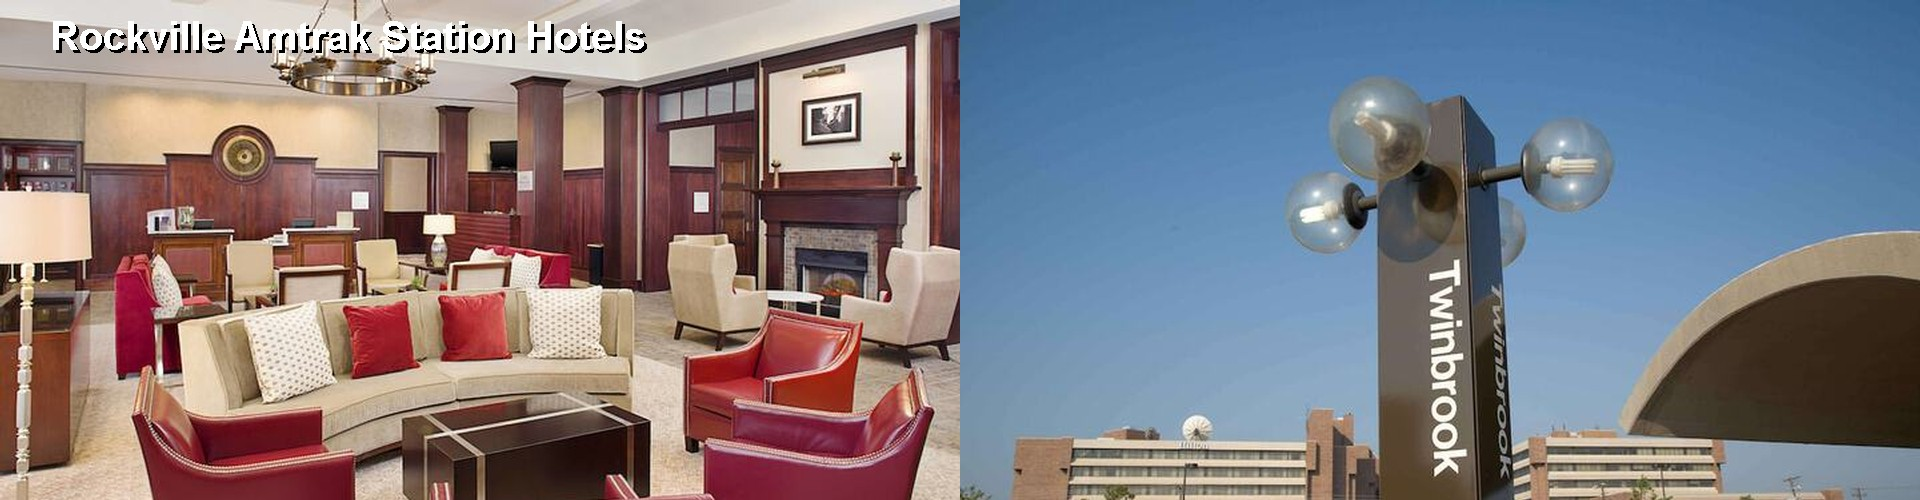 $44+ Hotels Near Rockville Amtrak Station (MD)